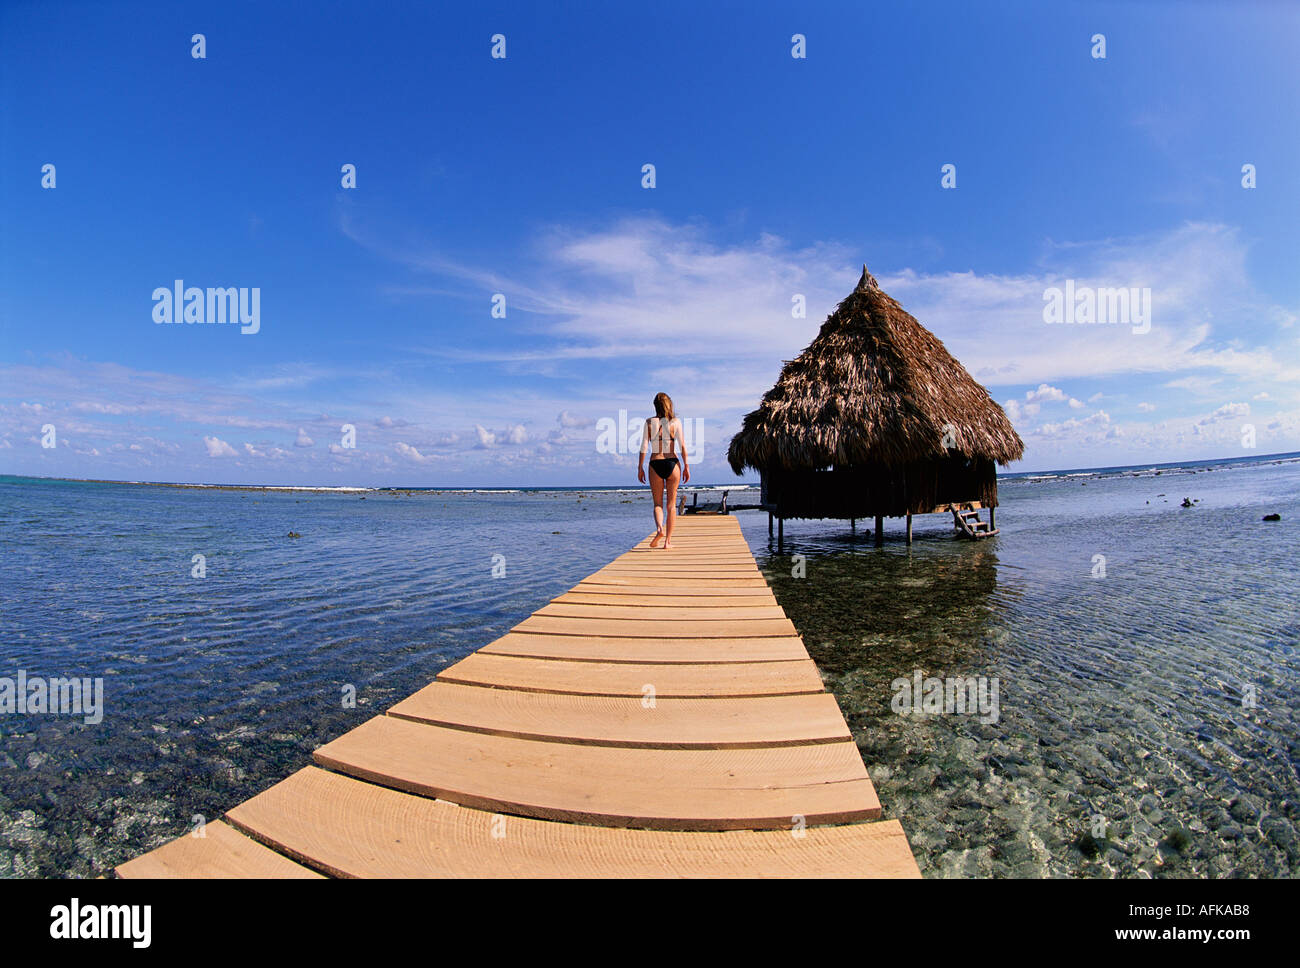 Woman On Walkway Toward Over Water Palapa Bungalow In Belize Caribbean Model And Property Released Image